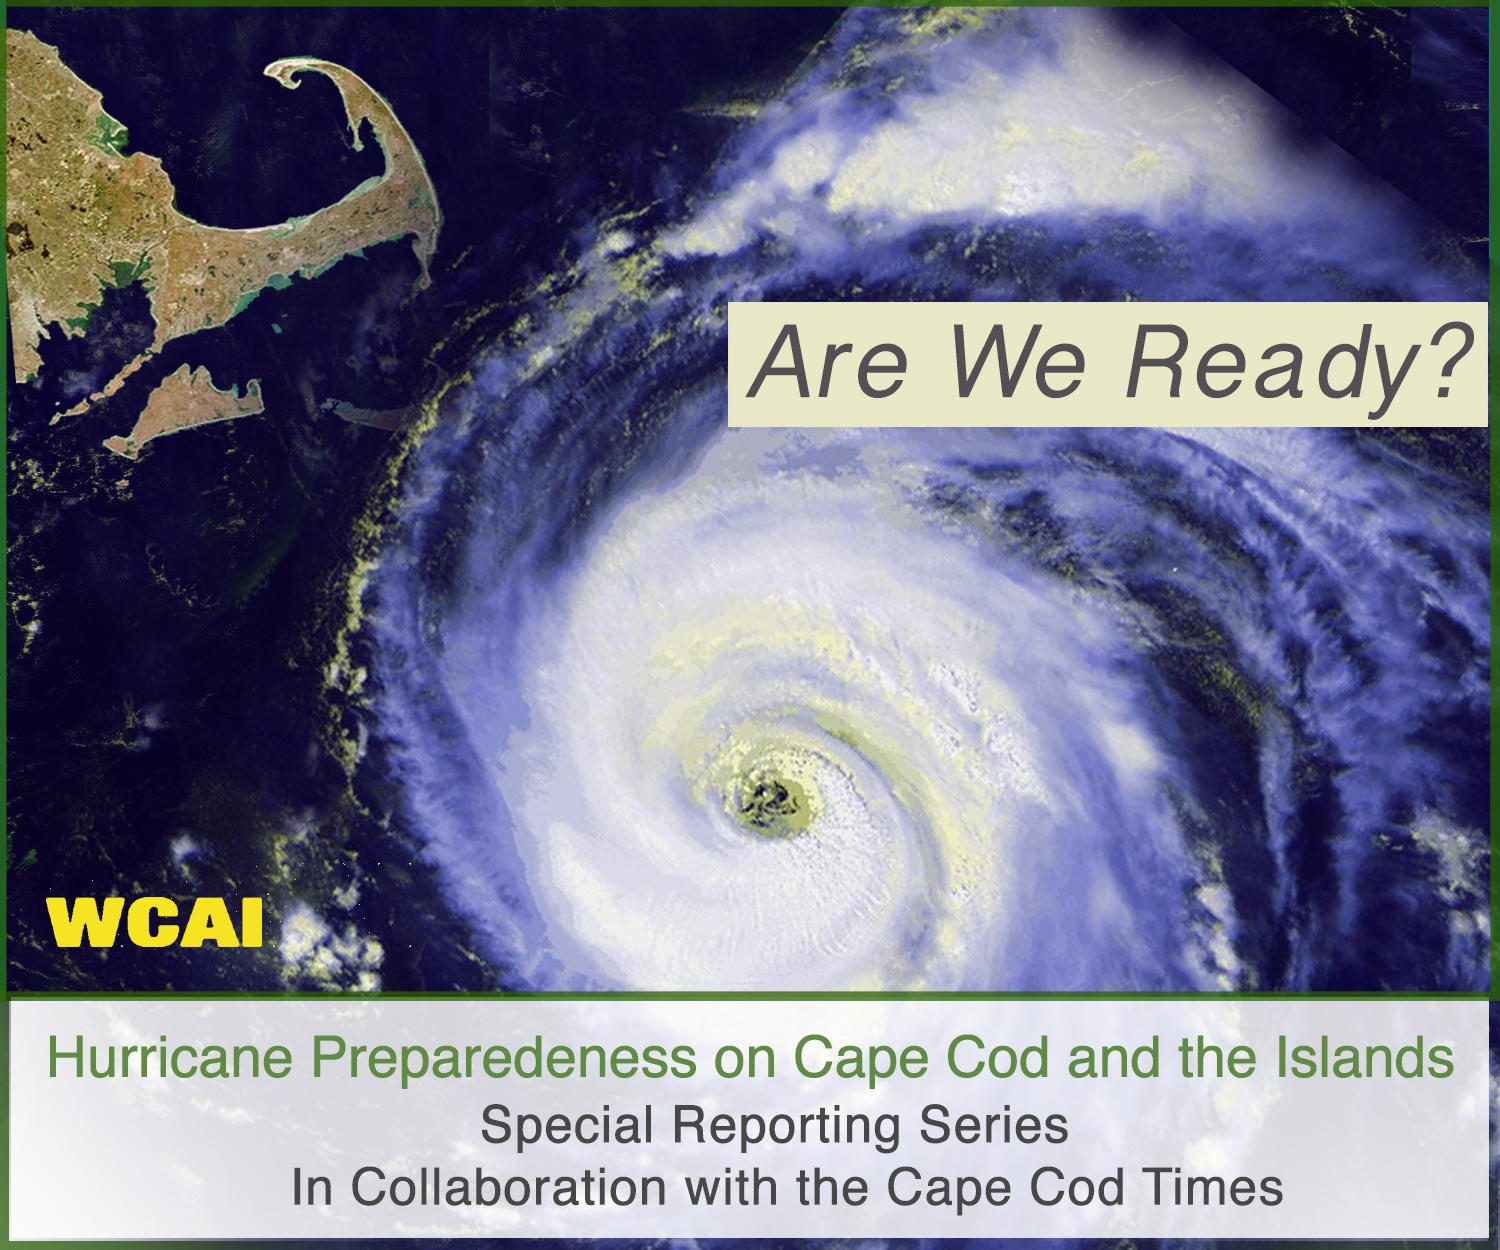 Are We Ready? | WCAI